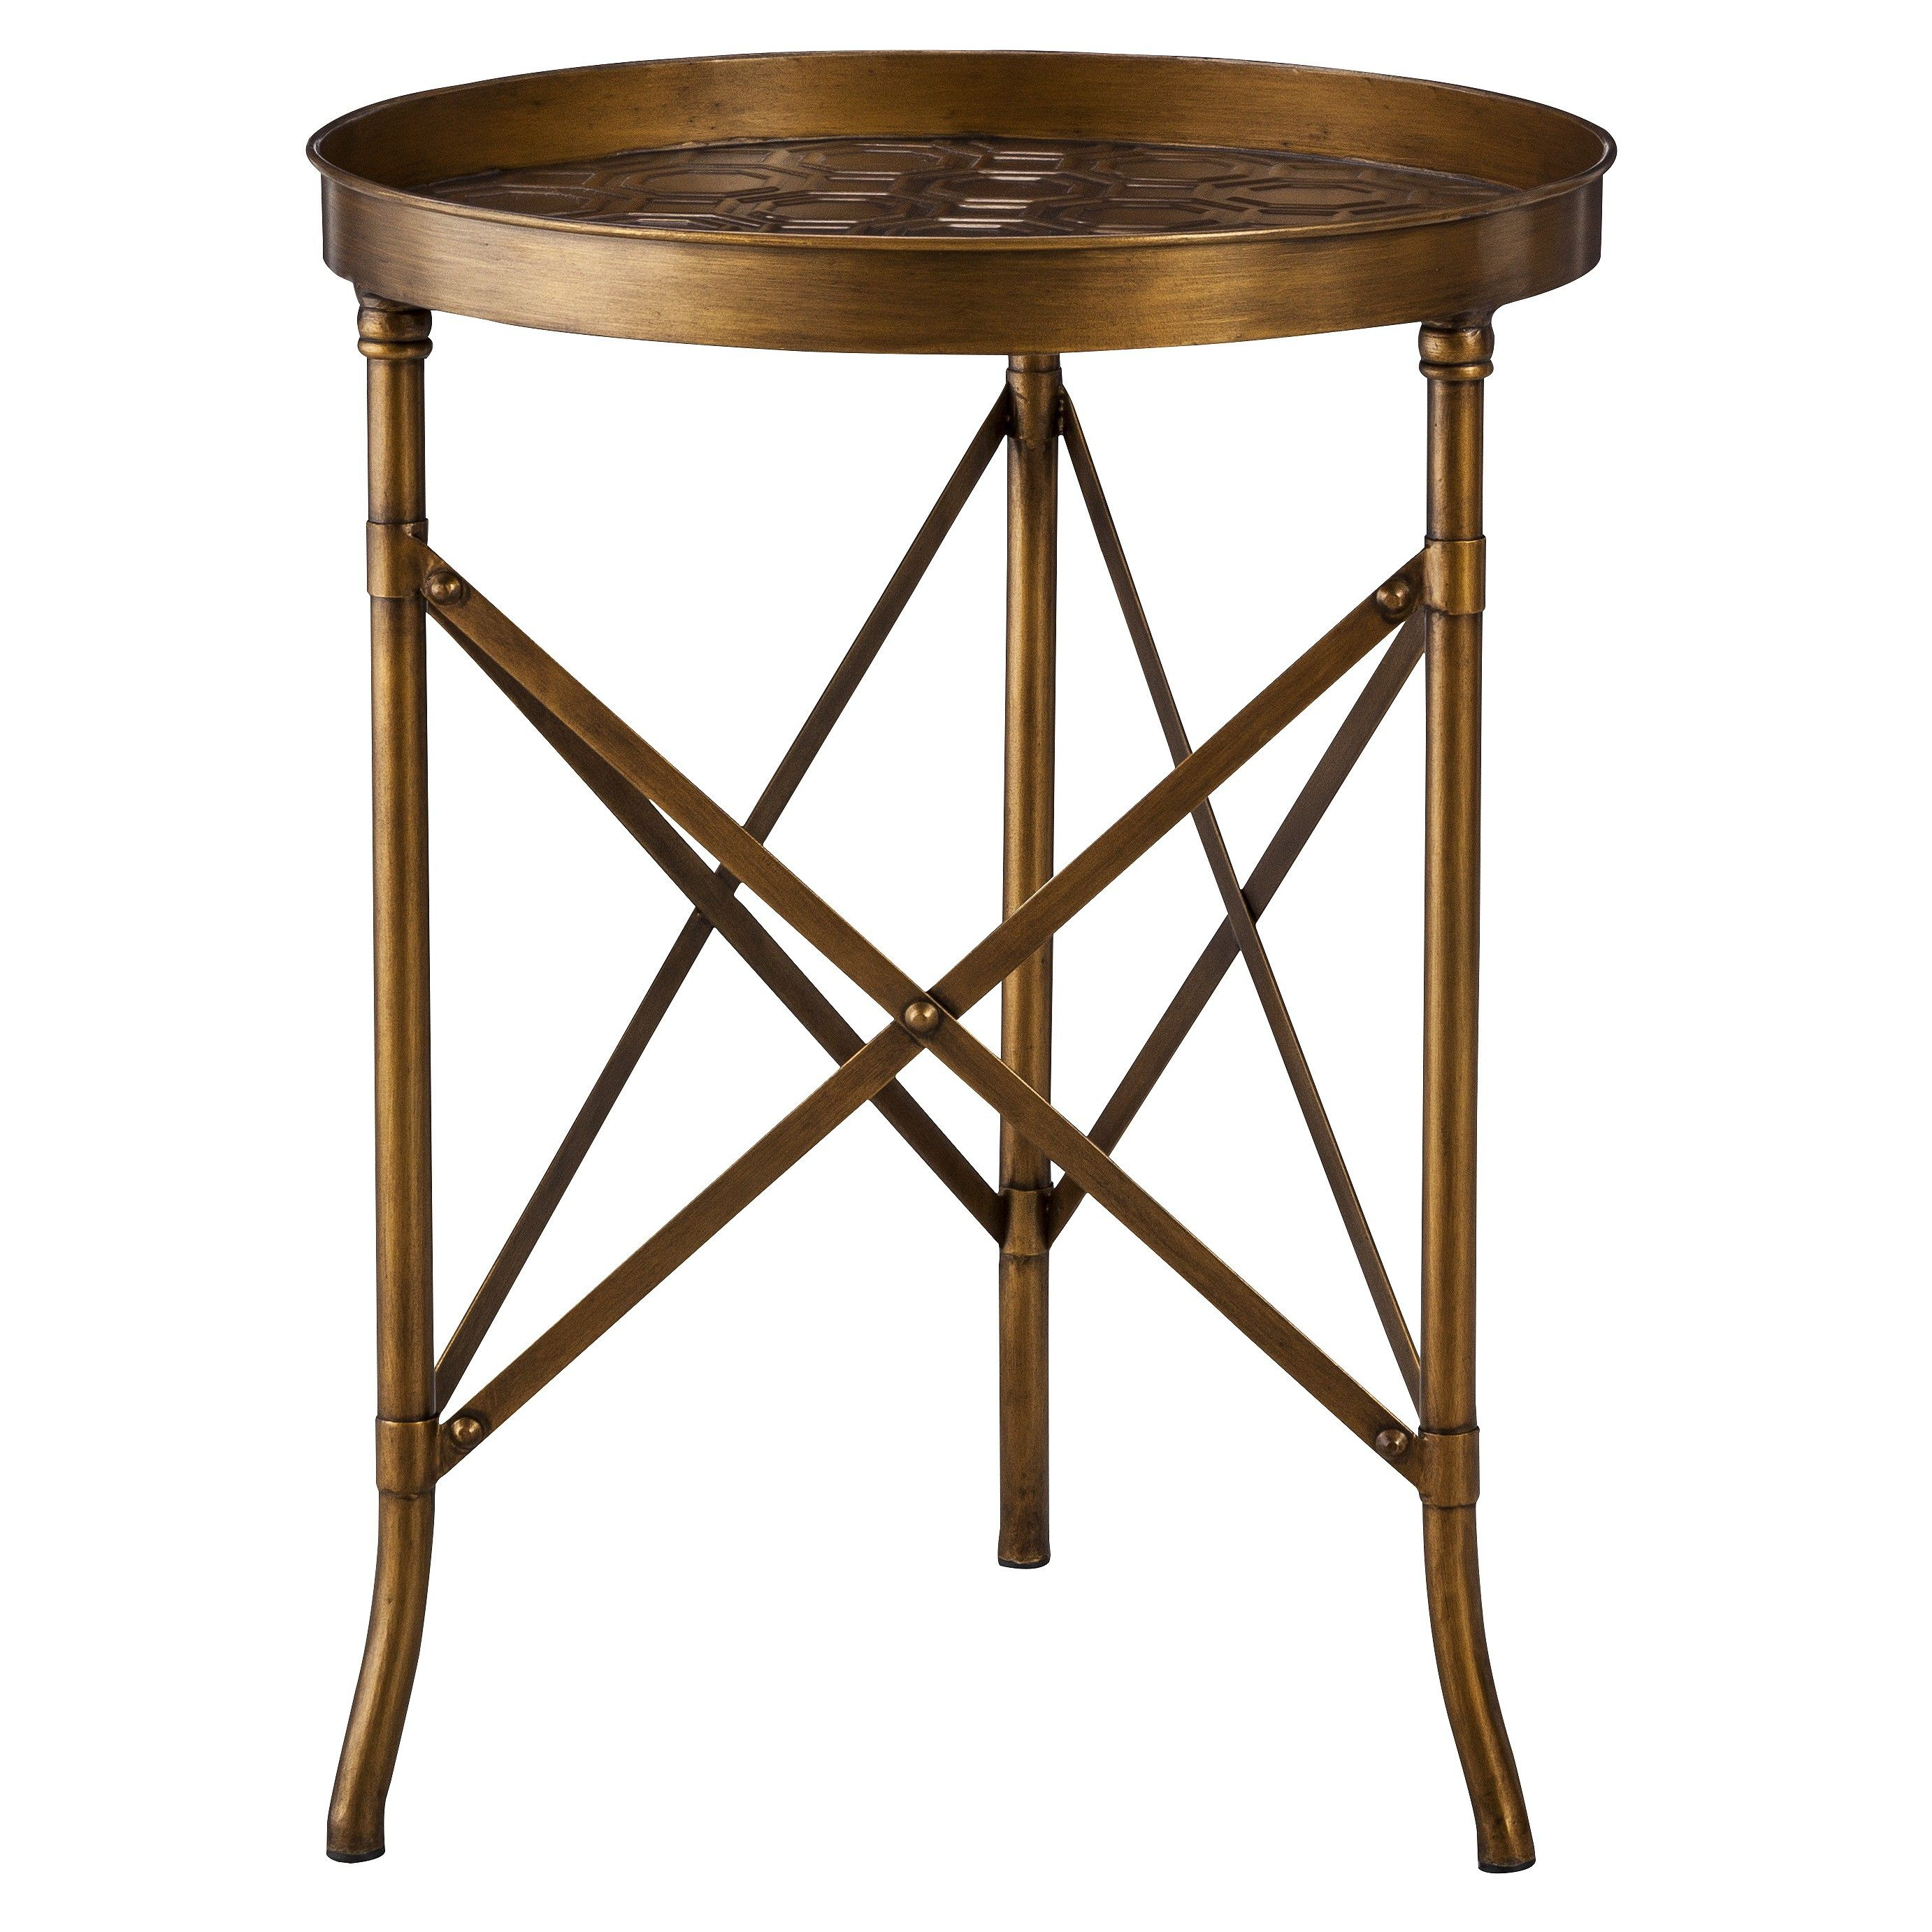 threshold stamped metal accent table gold target nightstand outdoor wood diy folding legs kohls dishes danish replica furniture farmhouse livingroom side tables stool oval dining